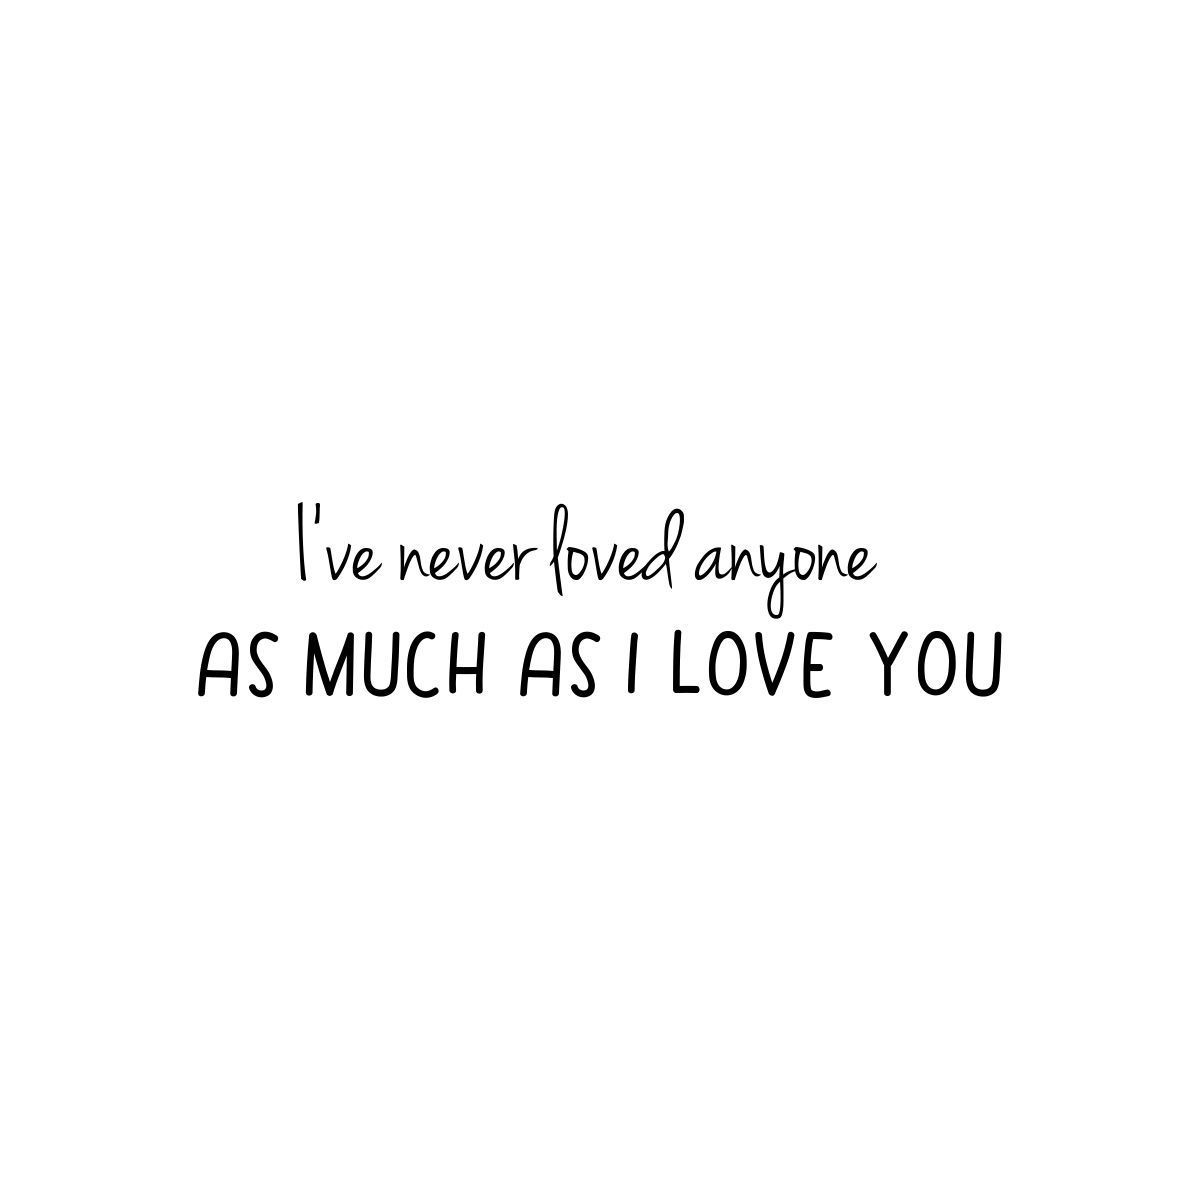 50 Ways To Be More Romantic Beautiful Girl Quotes Romantic Love Quotes